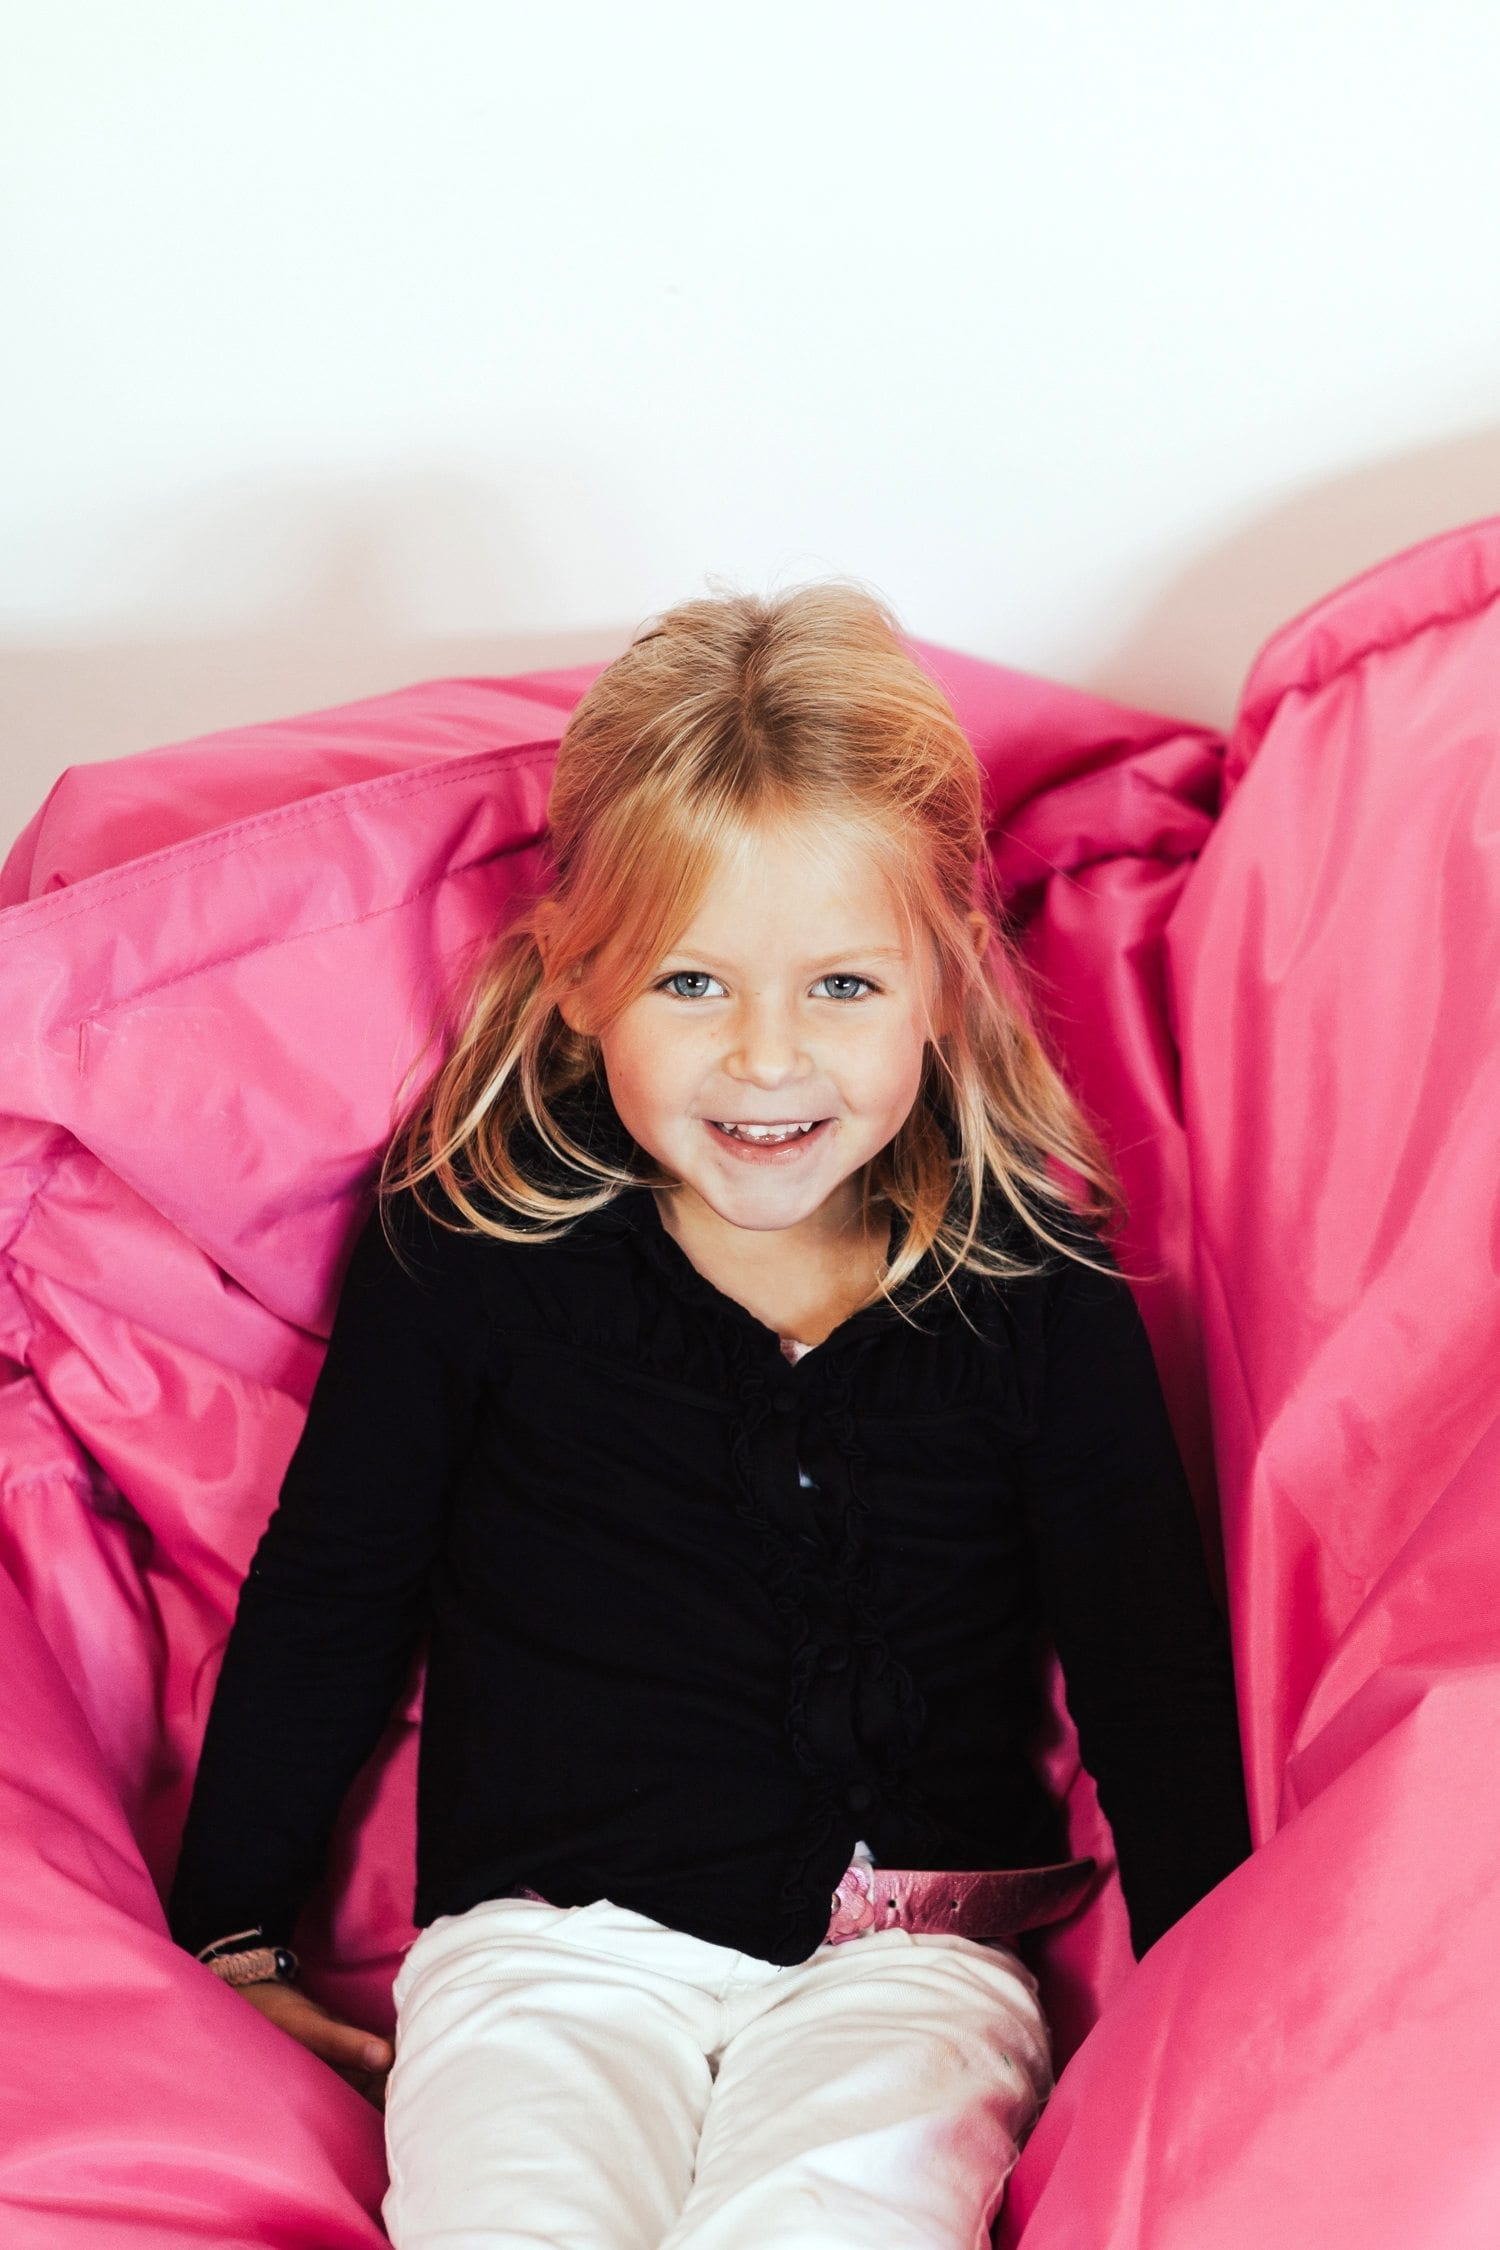 Lifestyle family home session girl portrait lifestyle photography picturelyspoken marianne hope